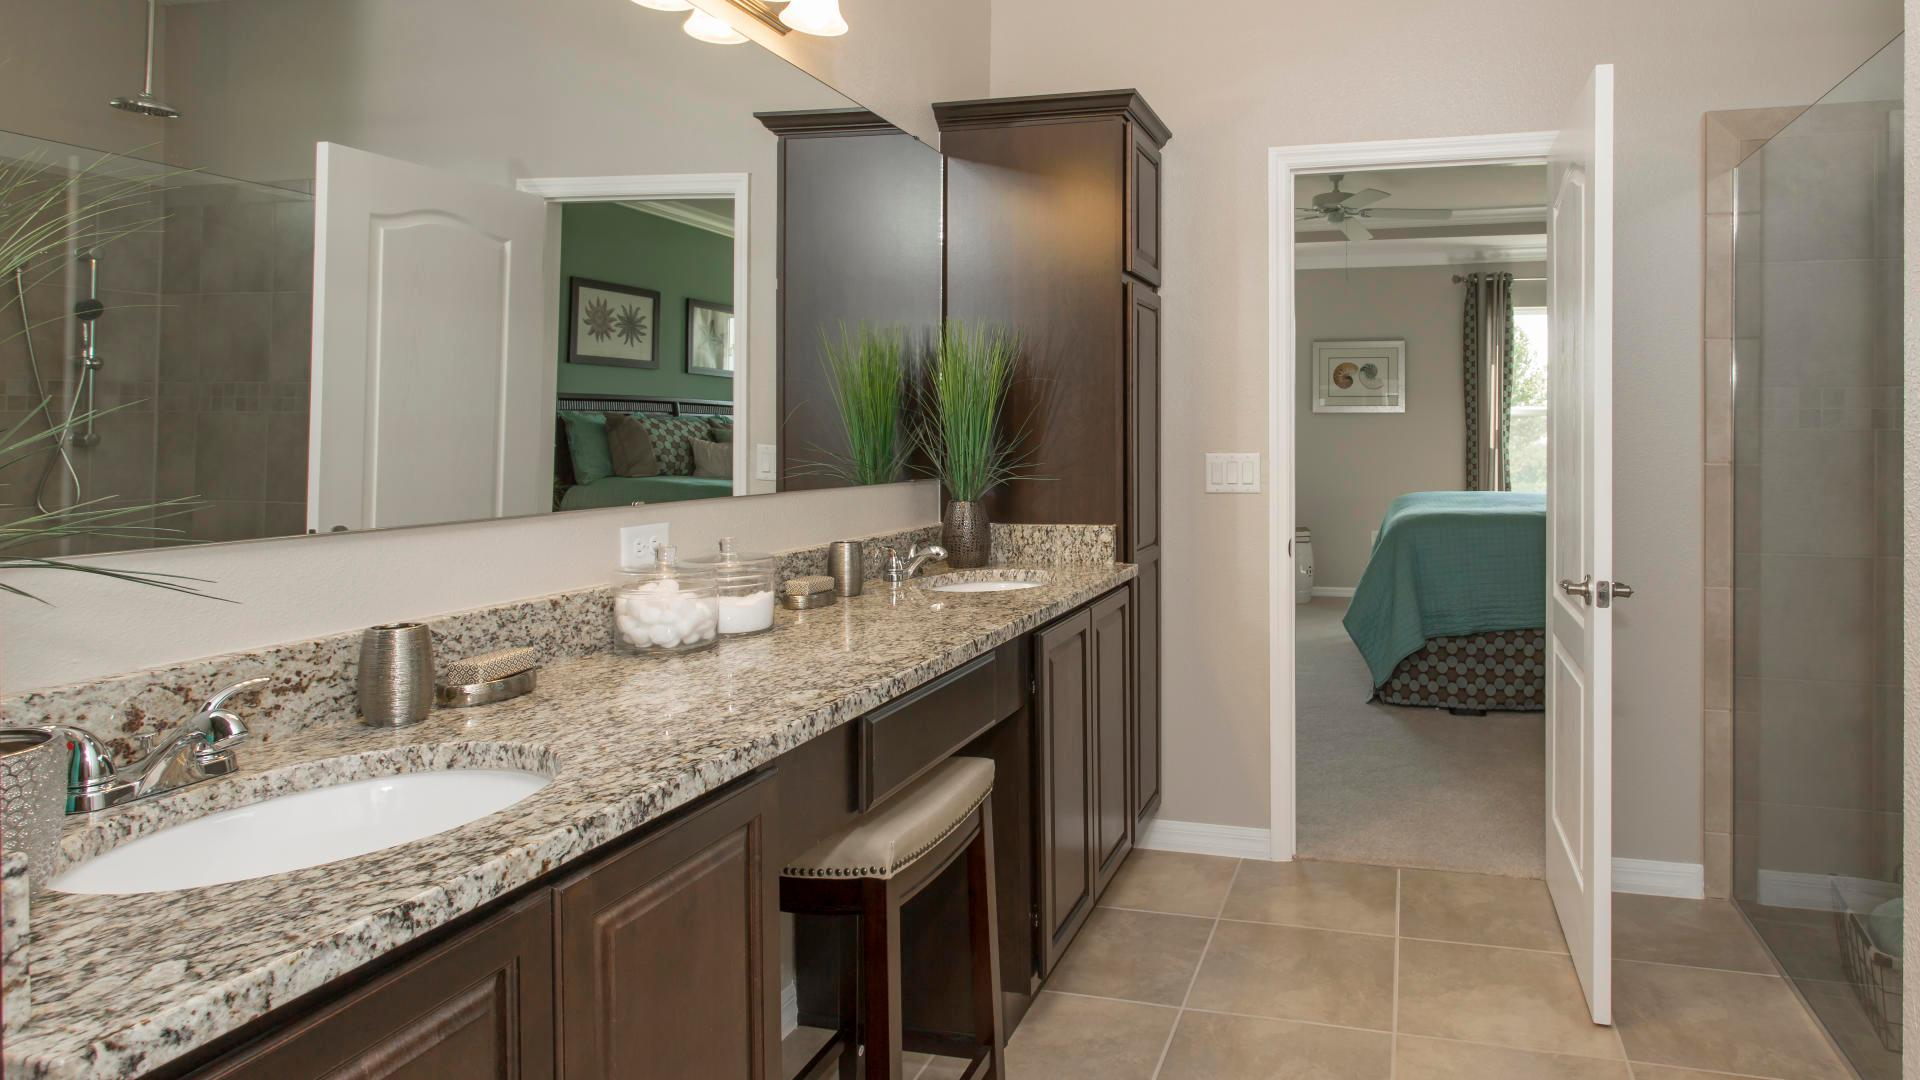 Bathroom featured in the Sierra By Maronda Homes in Fort Myers, FL